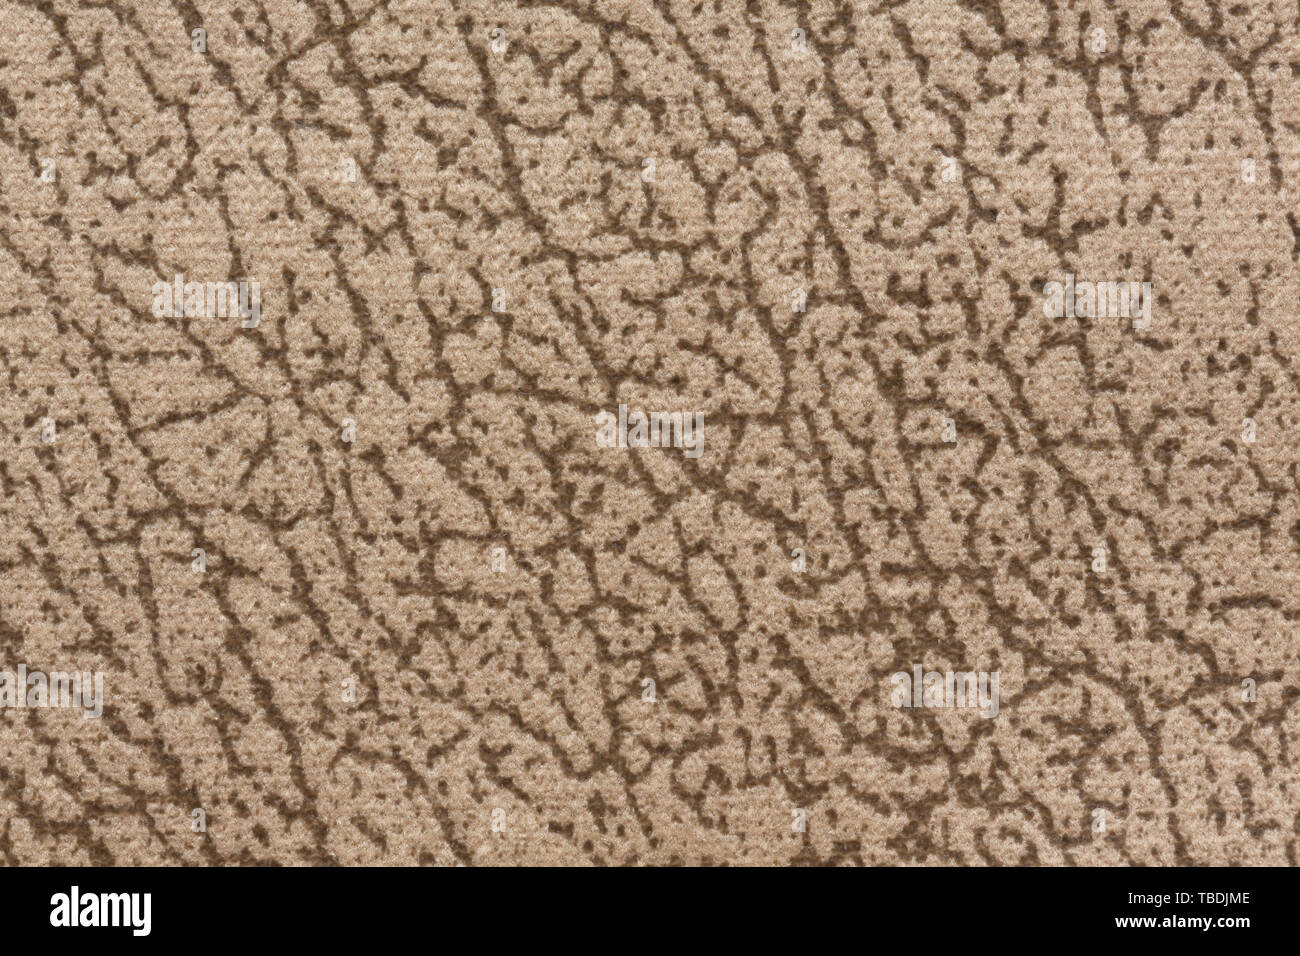 Unusual textile background with mottled surface on light beige colors. High resolution photo. - Stock Image